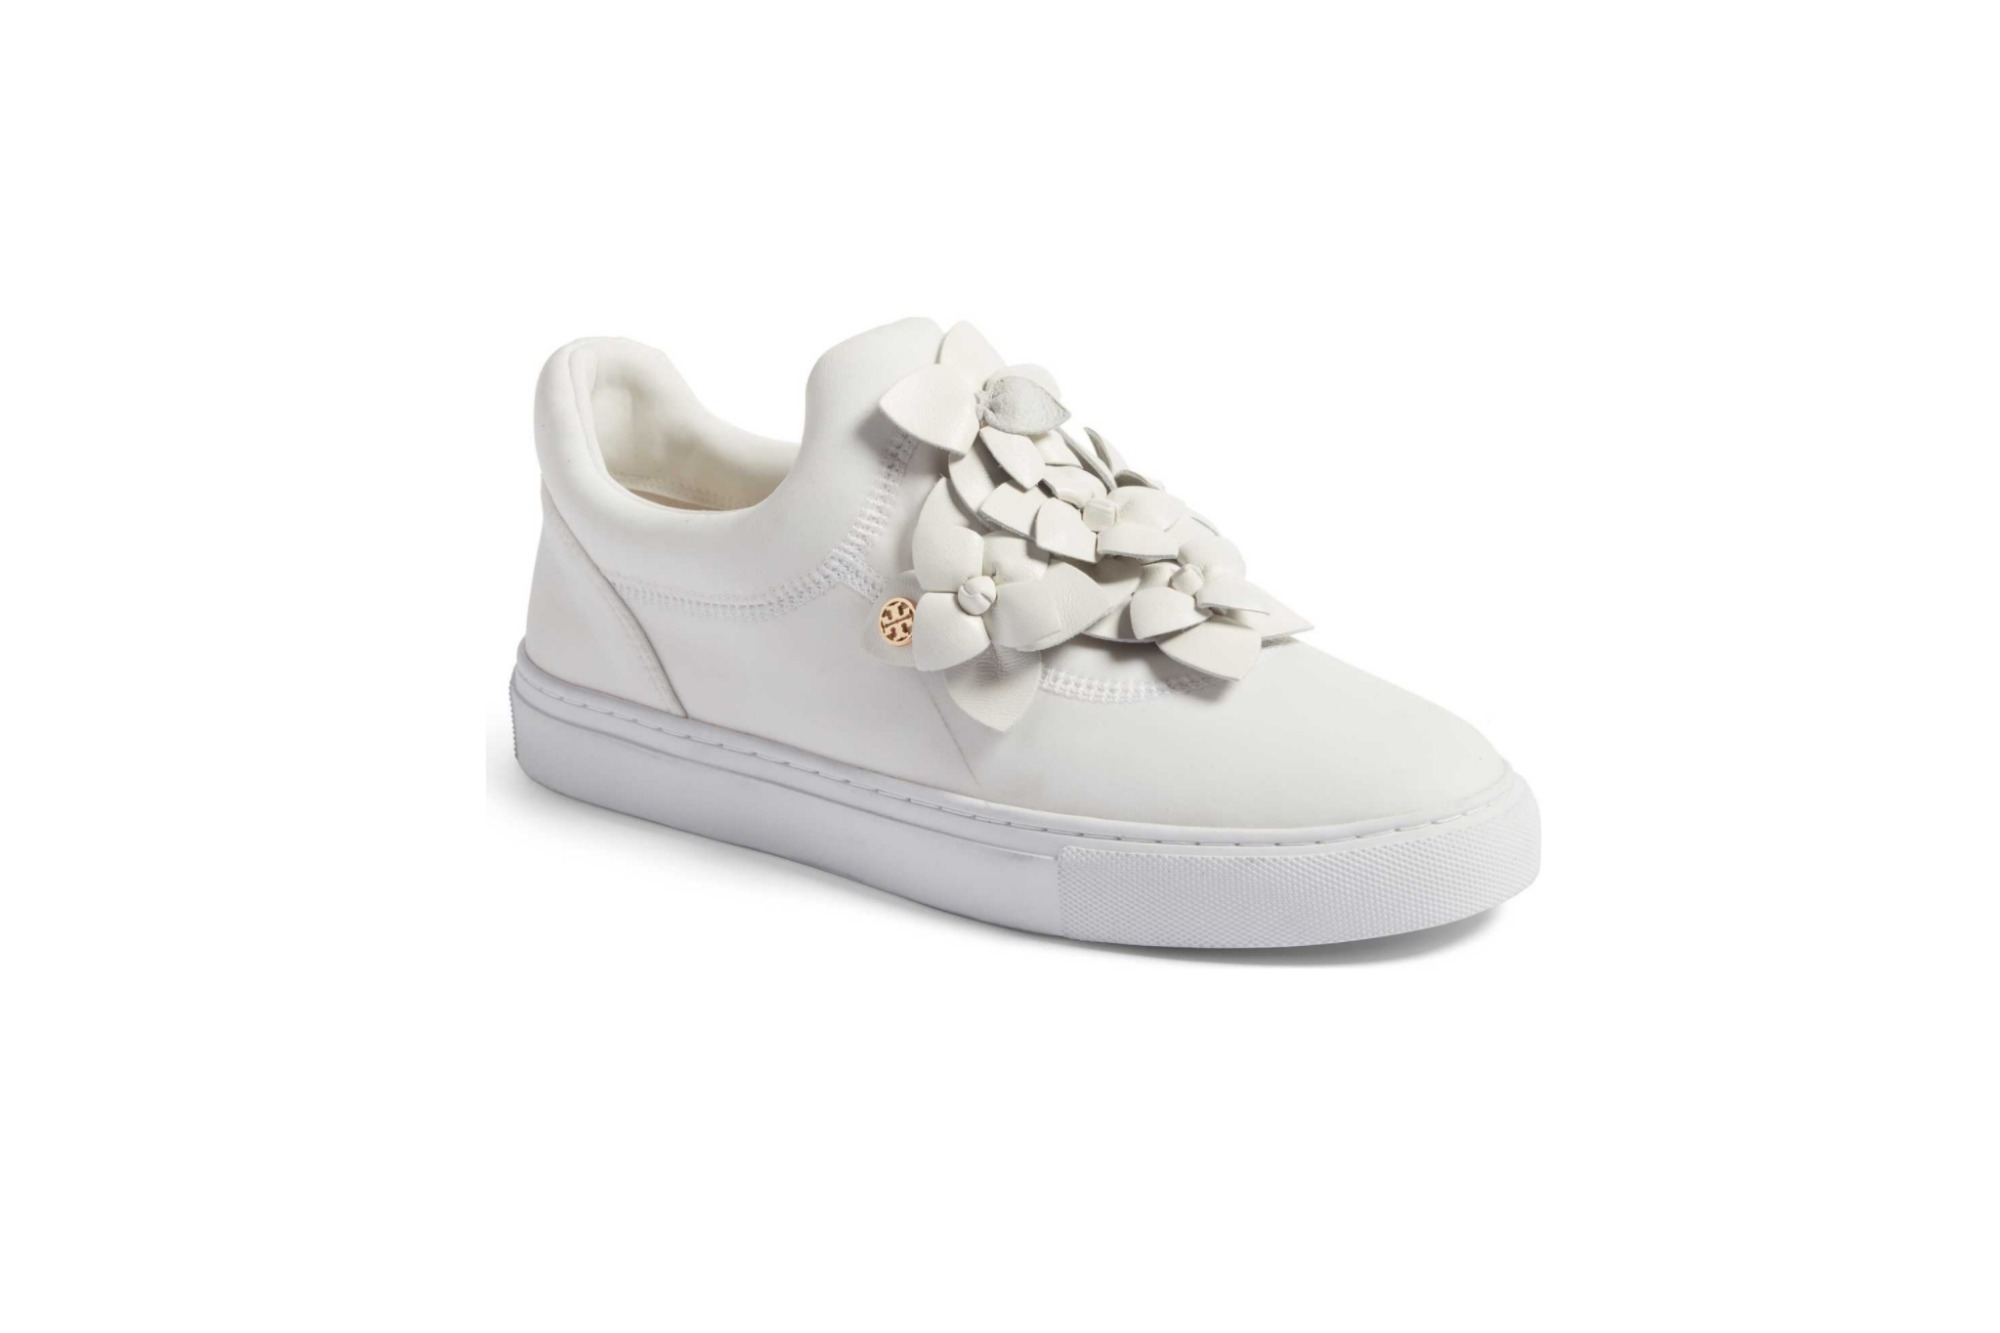 Tory Burch Blossom Sneaker